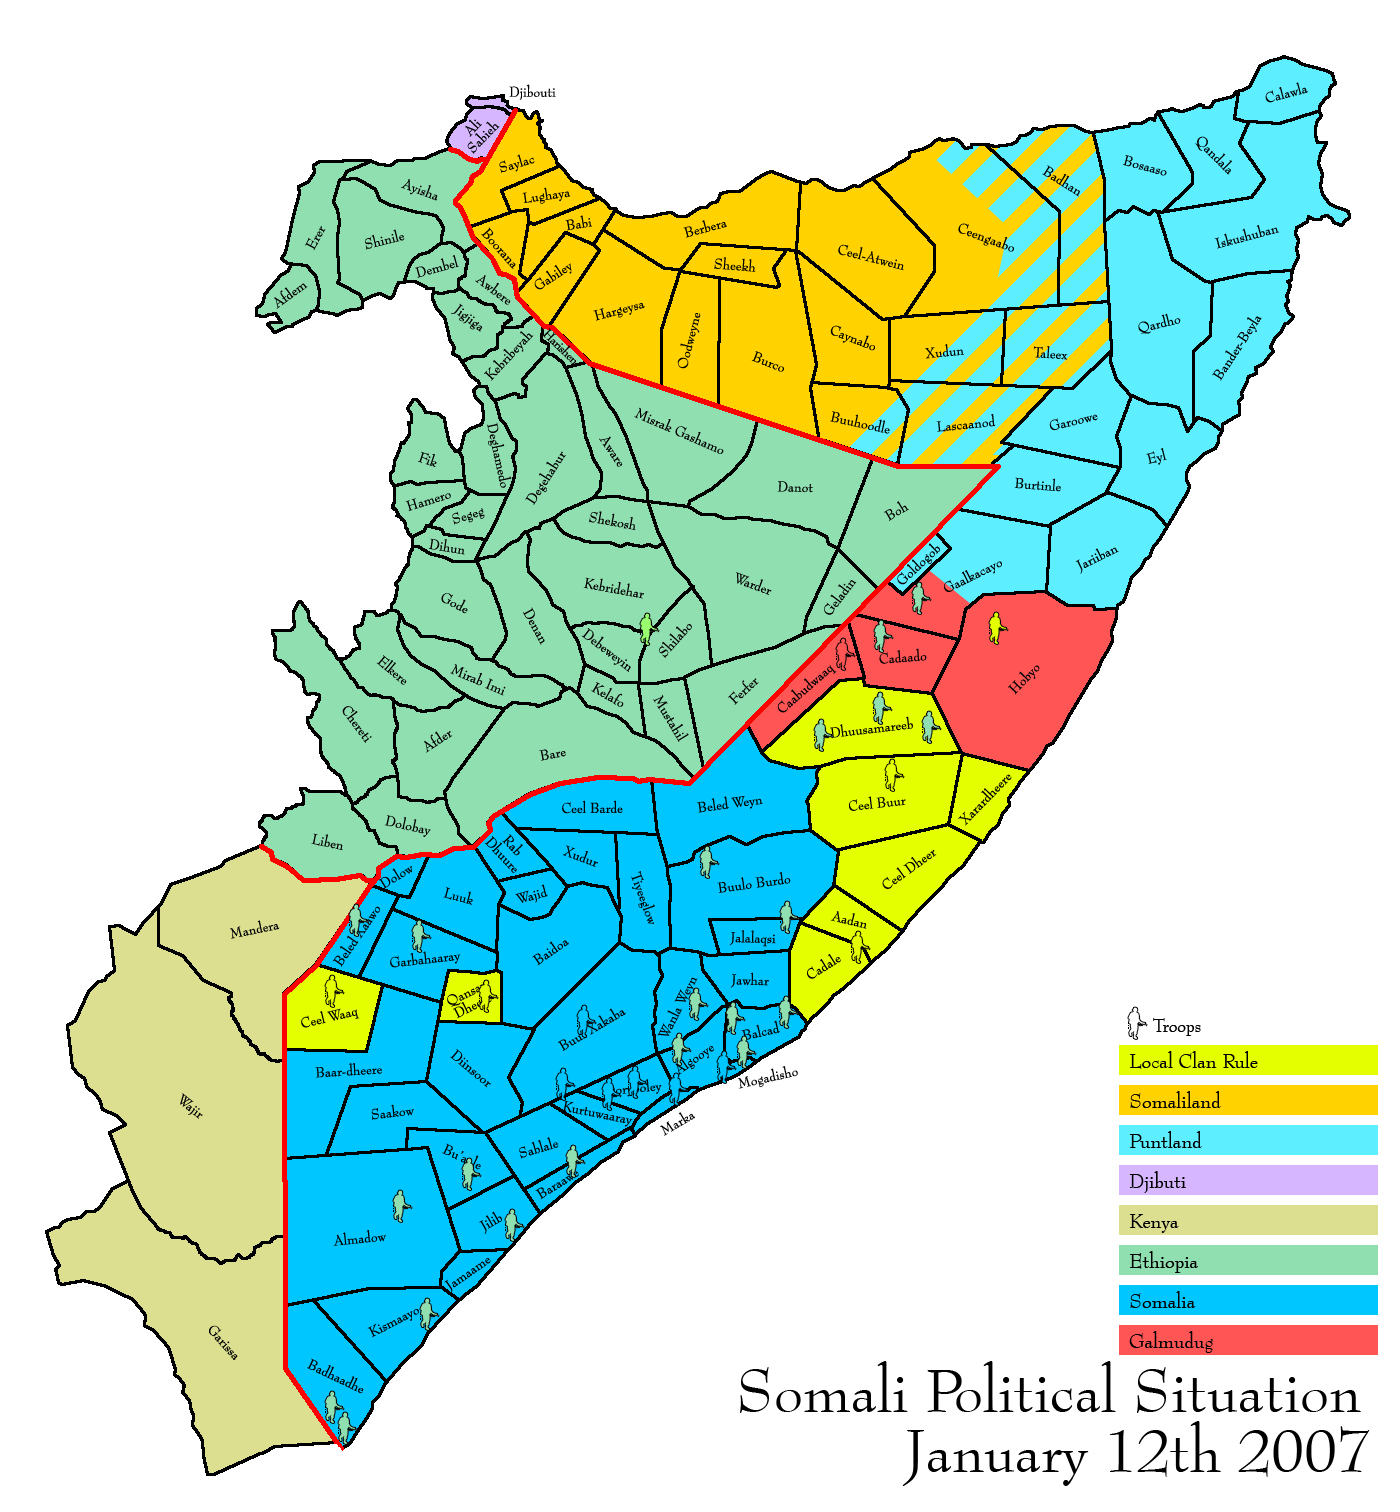 Somali residents in Ethiopia, Kenya and Djibouti